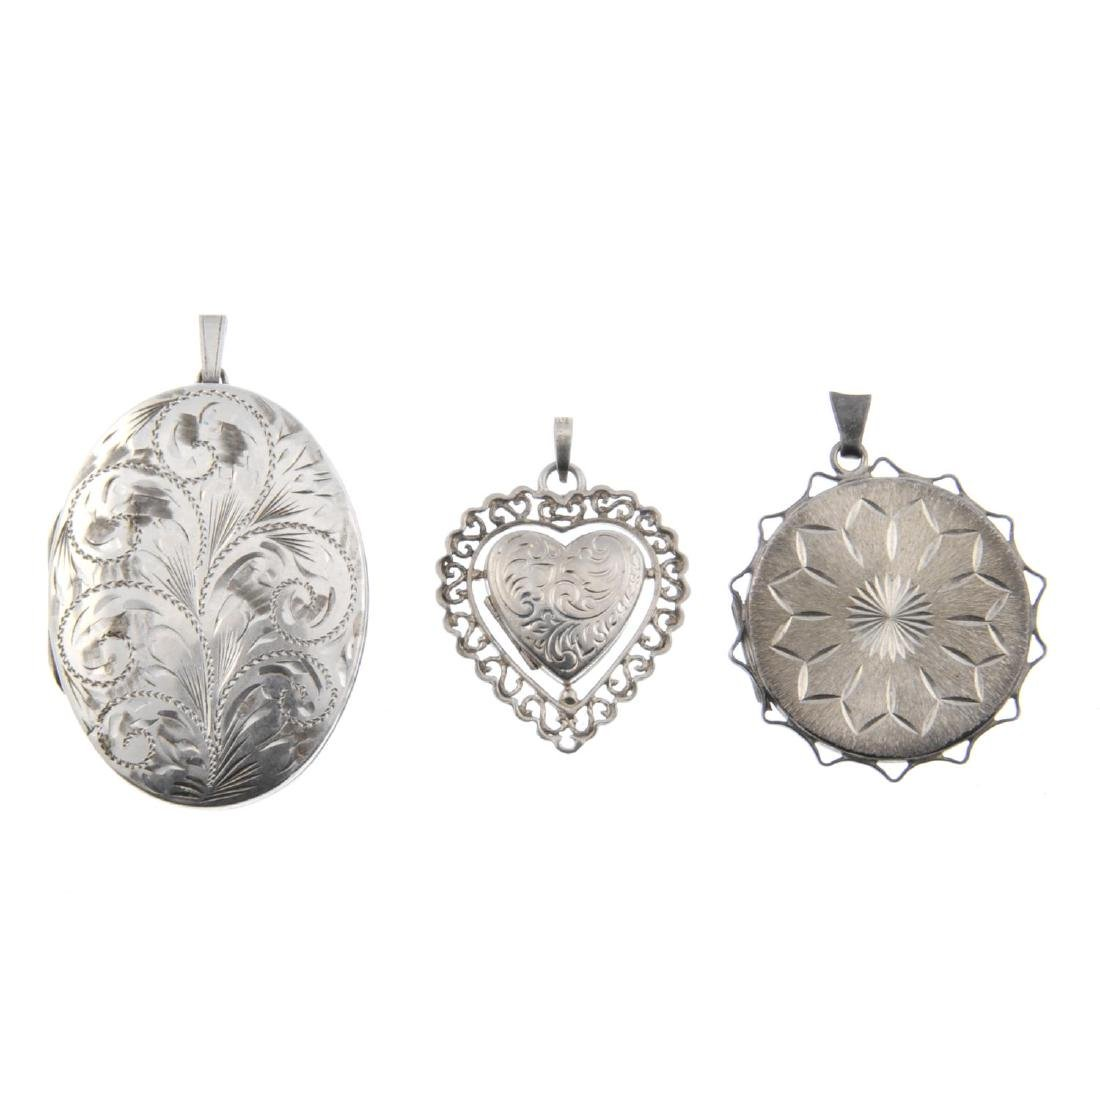 A selection of silver and white metal lockets. Of oval,